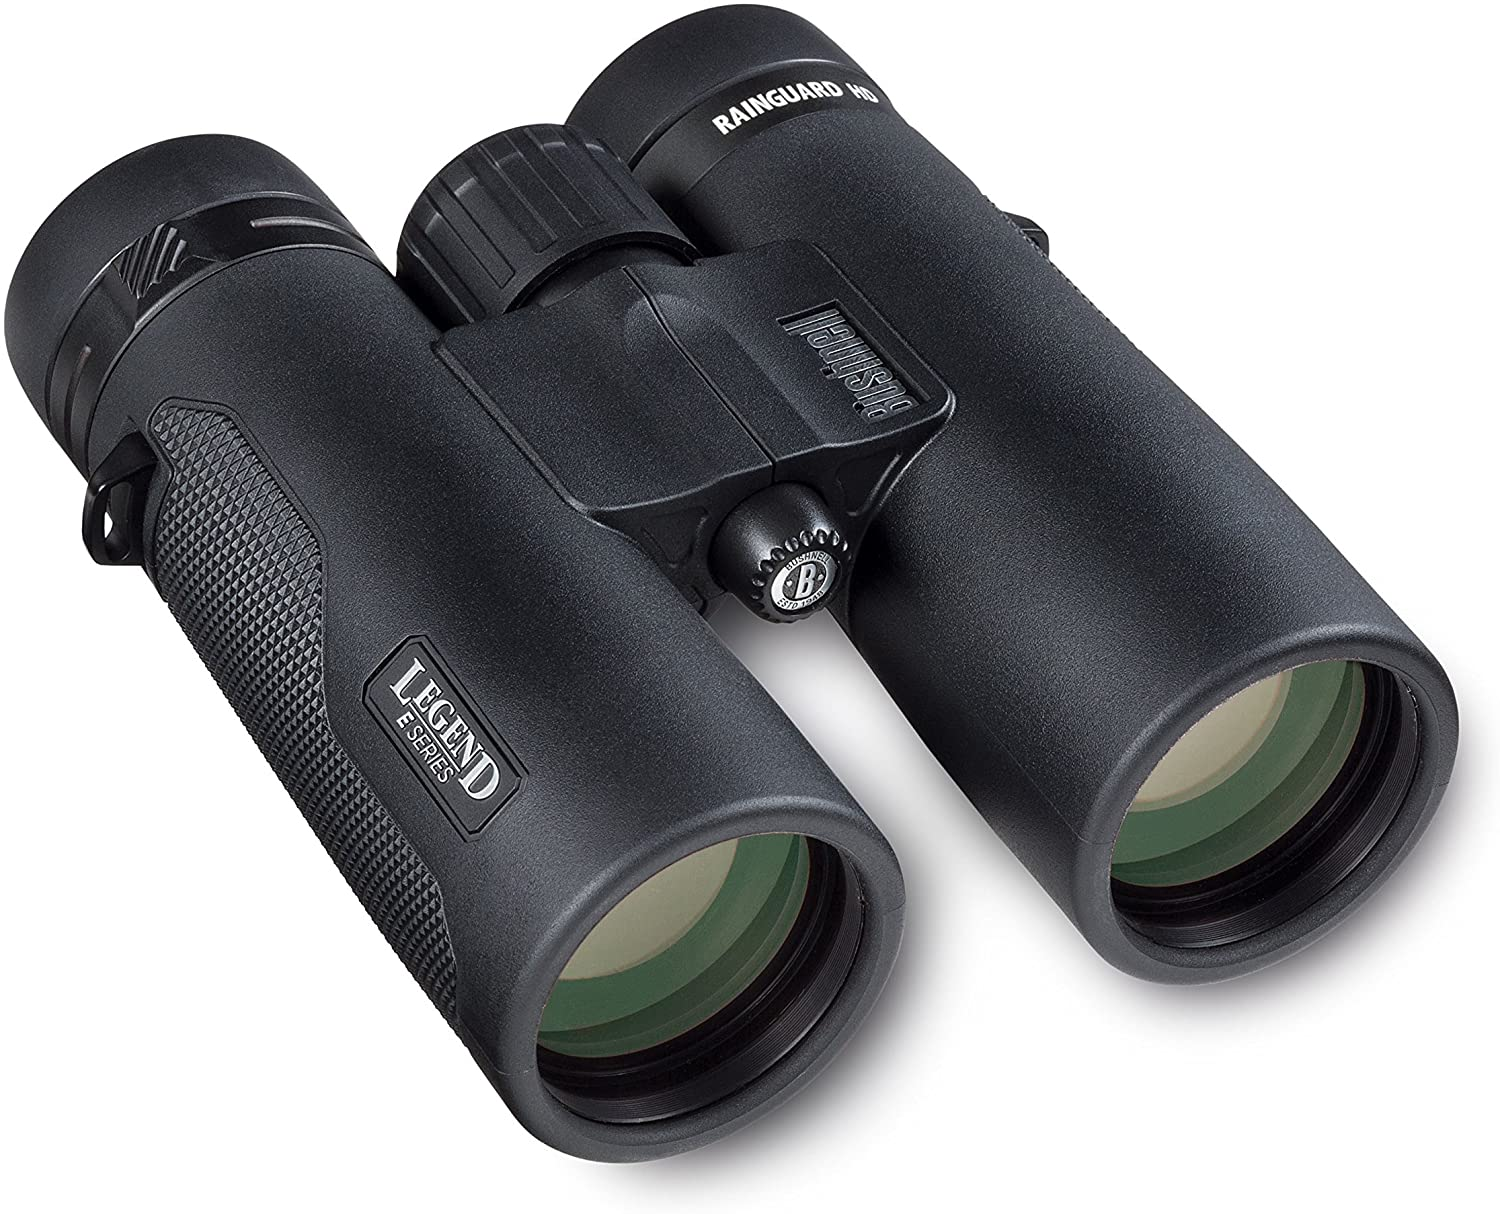 Photo of a pair of binoculars in black color, with the word 'legend' printed onto it near the right lens.